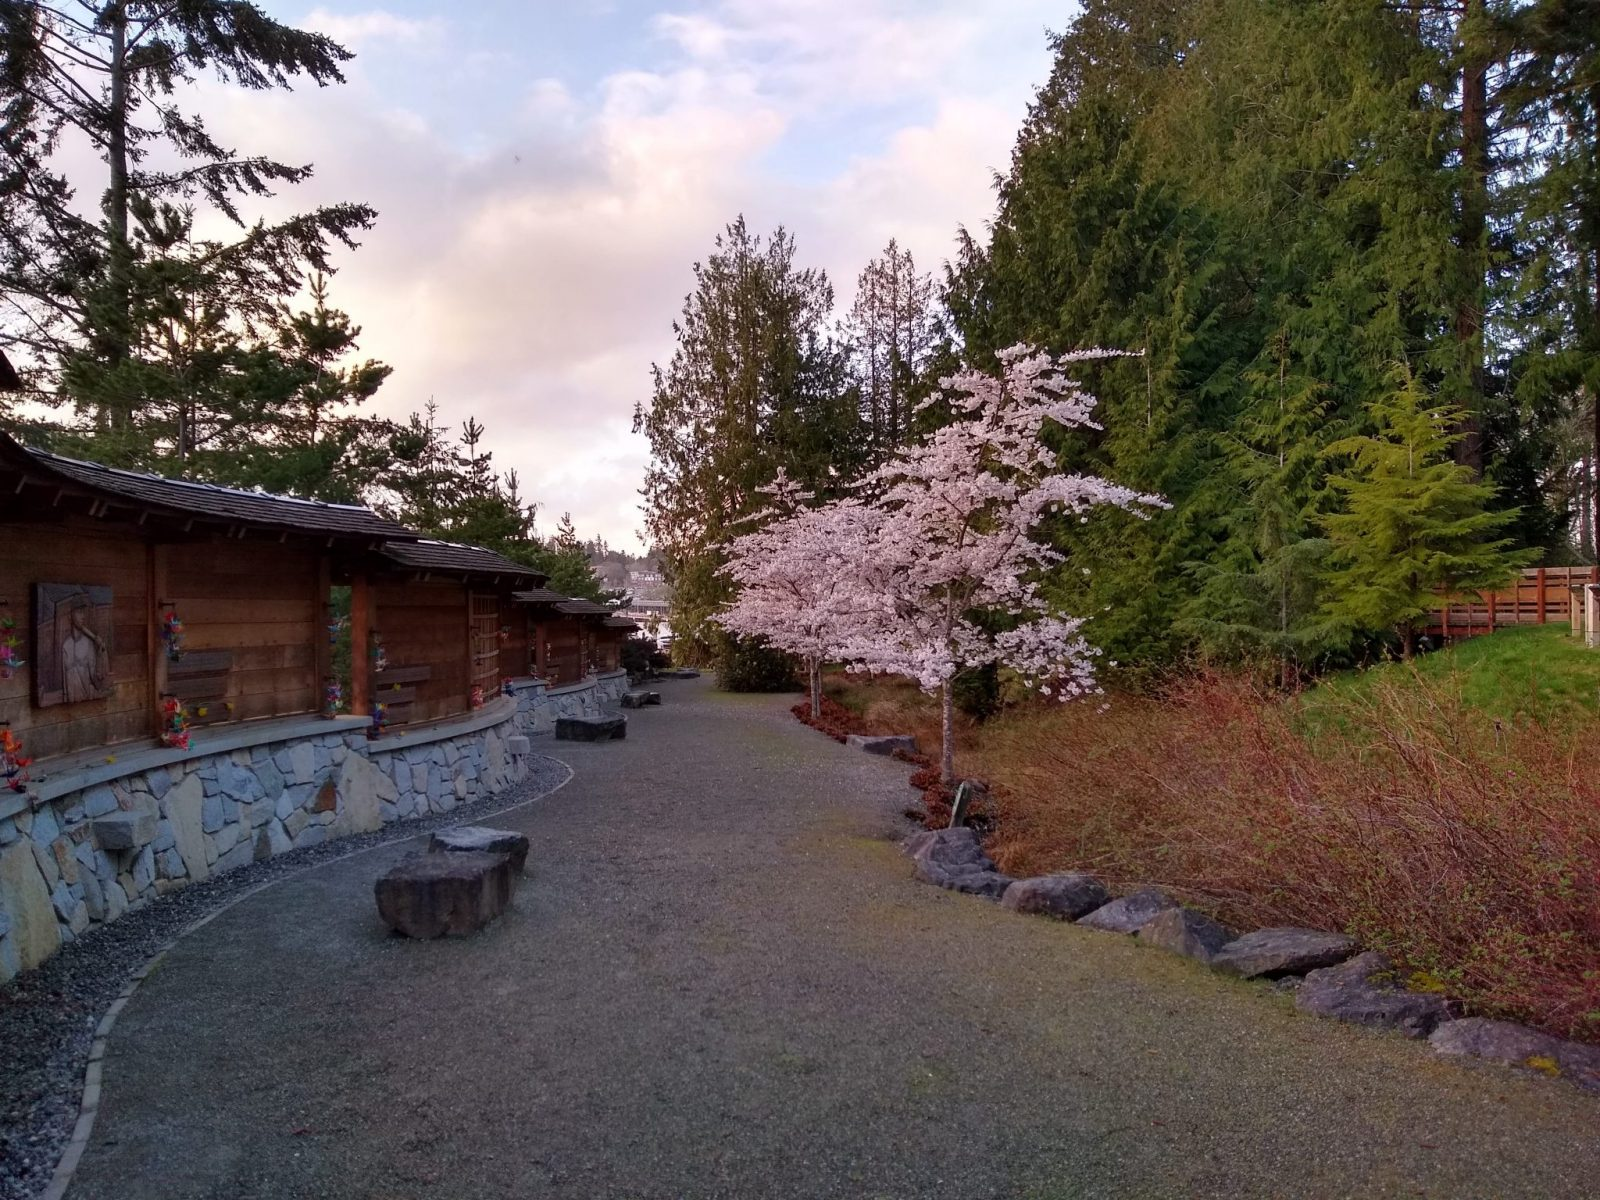 A gravel path lined with rocks and a wooden memorial along the side. The other side has flowering trees and evergreen trees